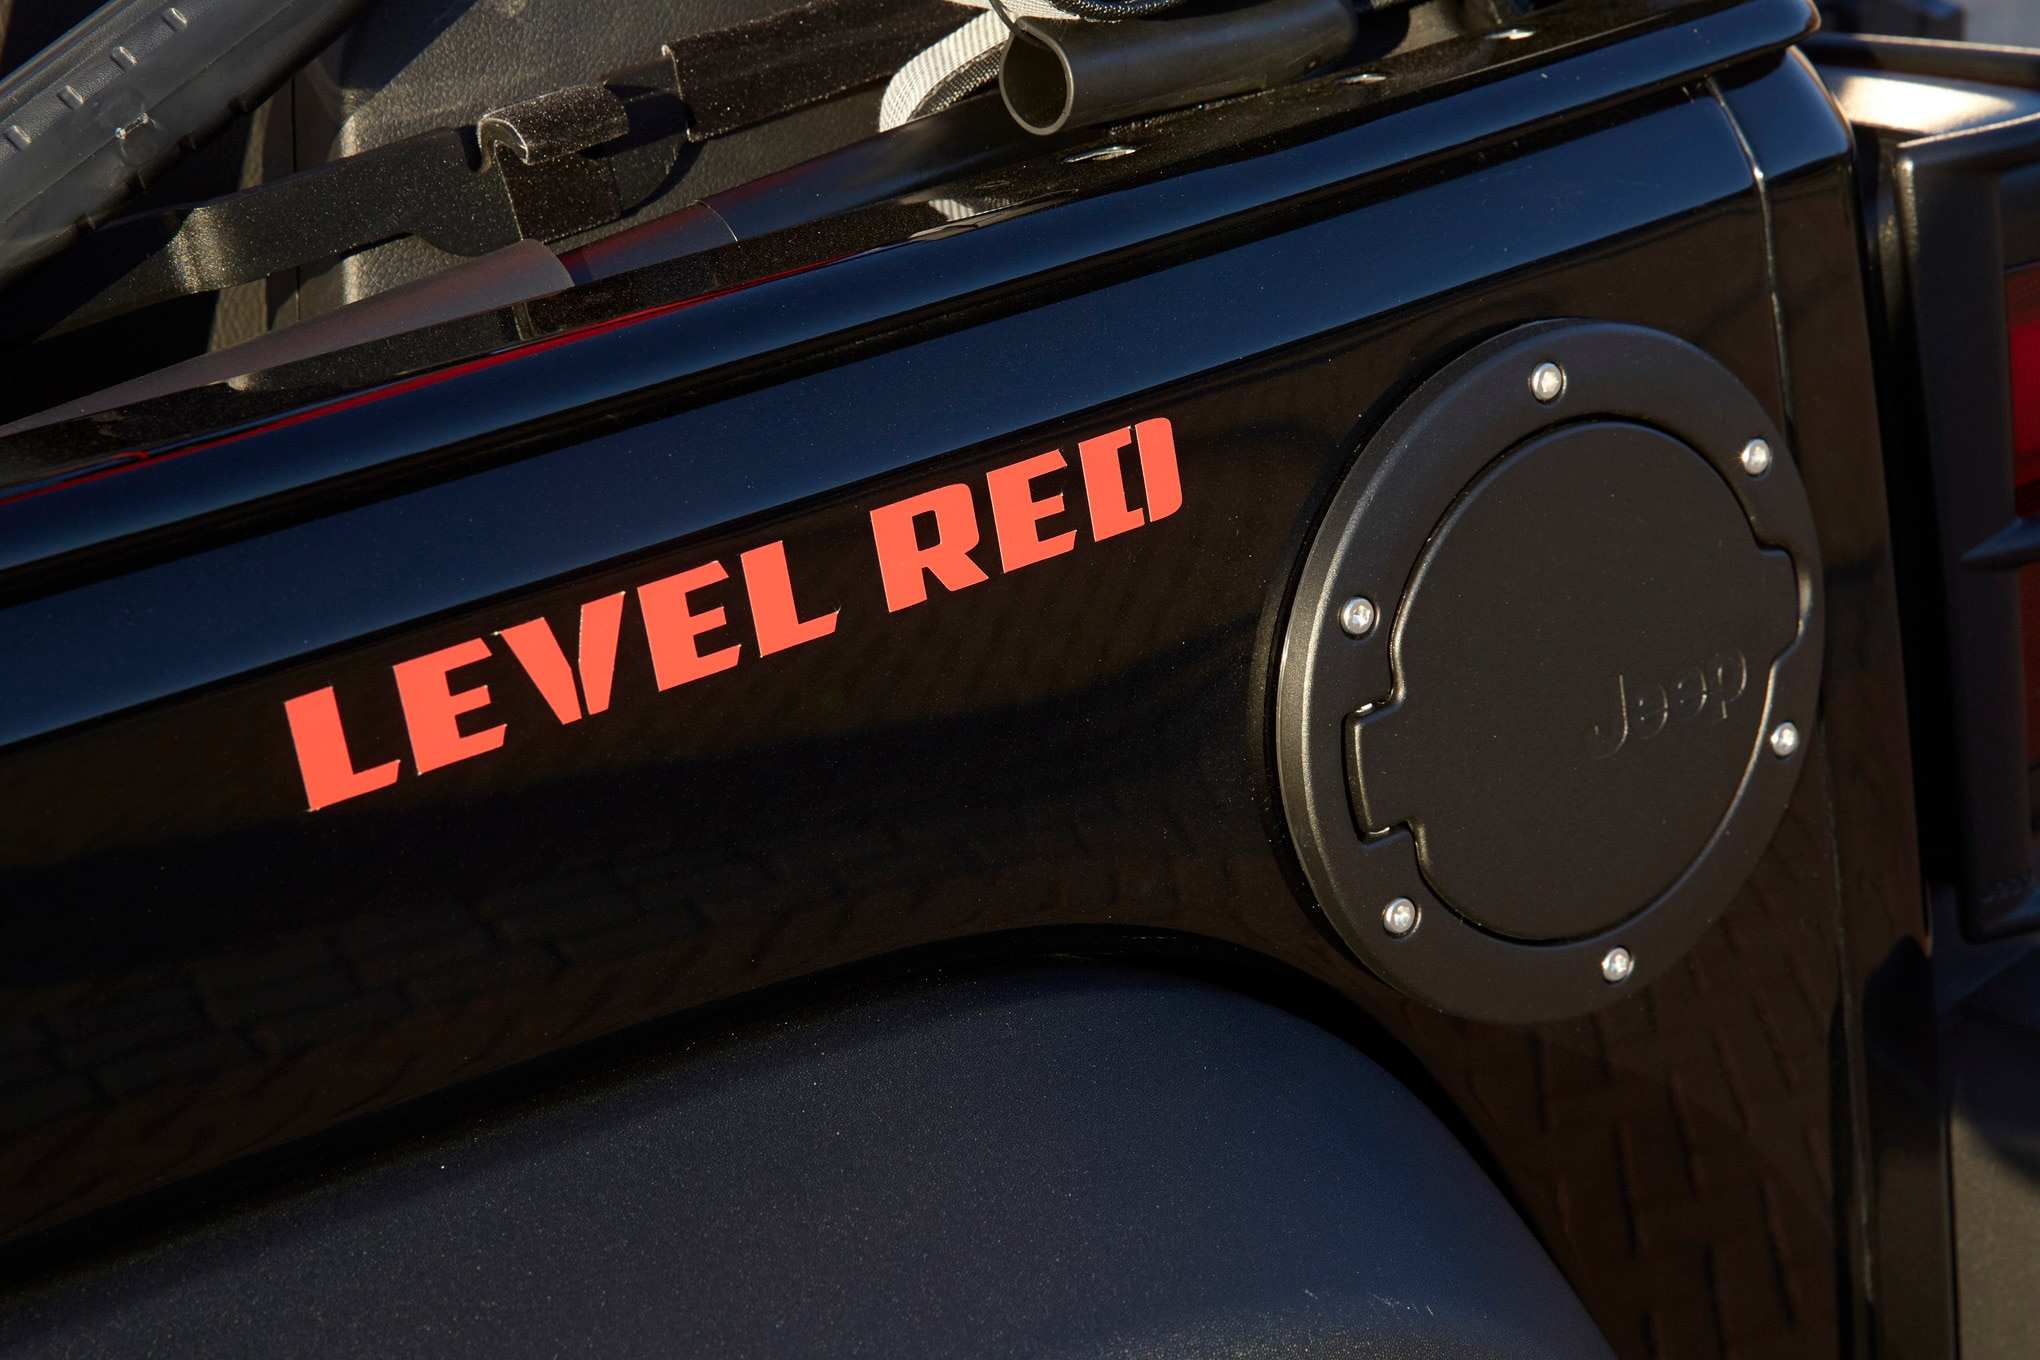 Jeep Wrangler Level Red Concept fuel cap